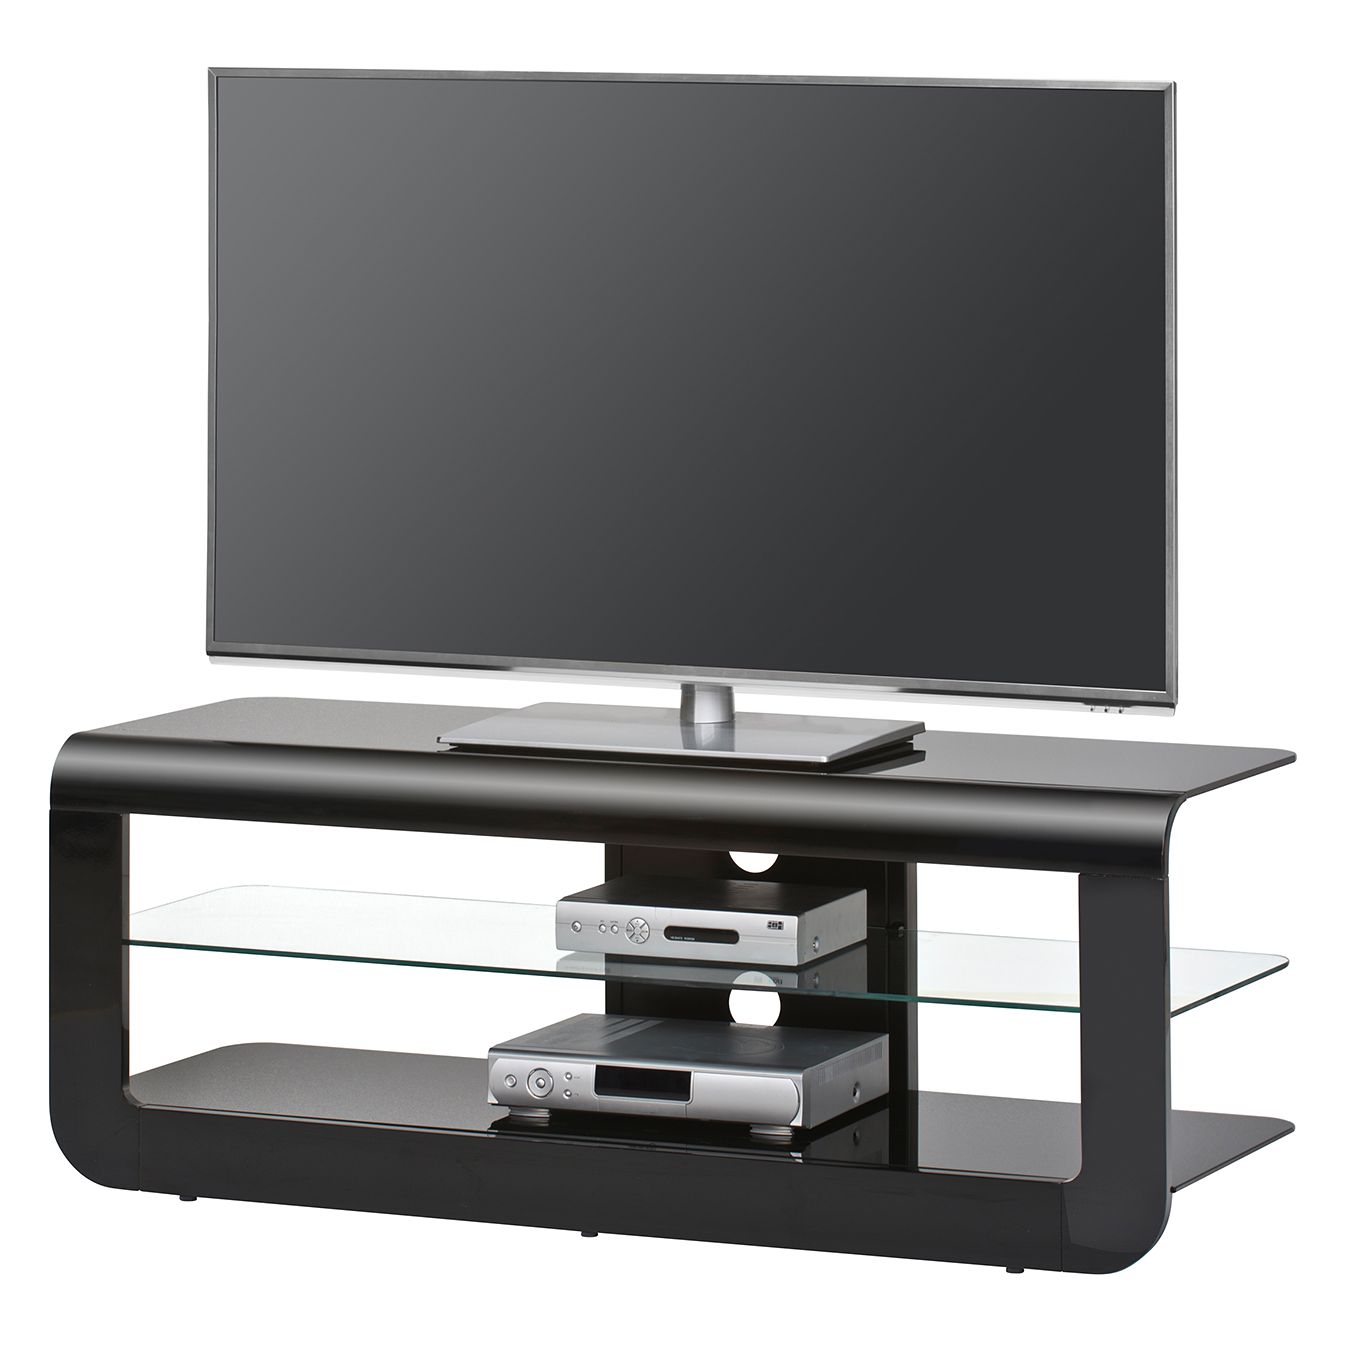 tv m bel schwarz preis vergleich 2016. Black Bedroom Furniture Sets. Home Design Ideas